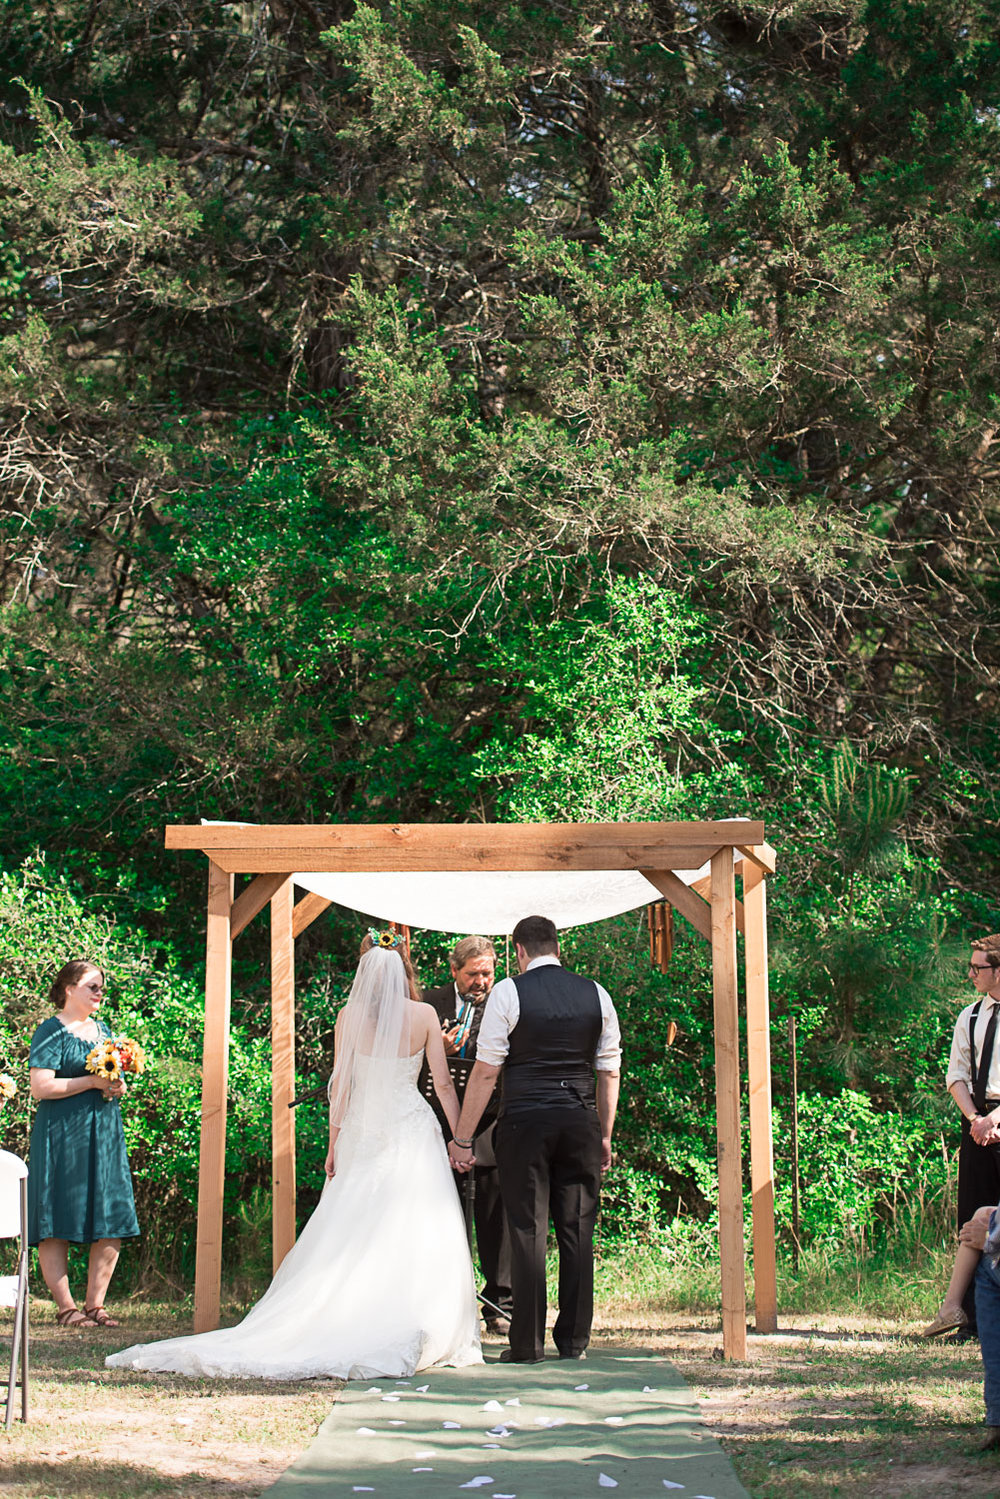 67 outdoor wedding in forest in texas.jpg